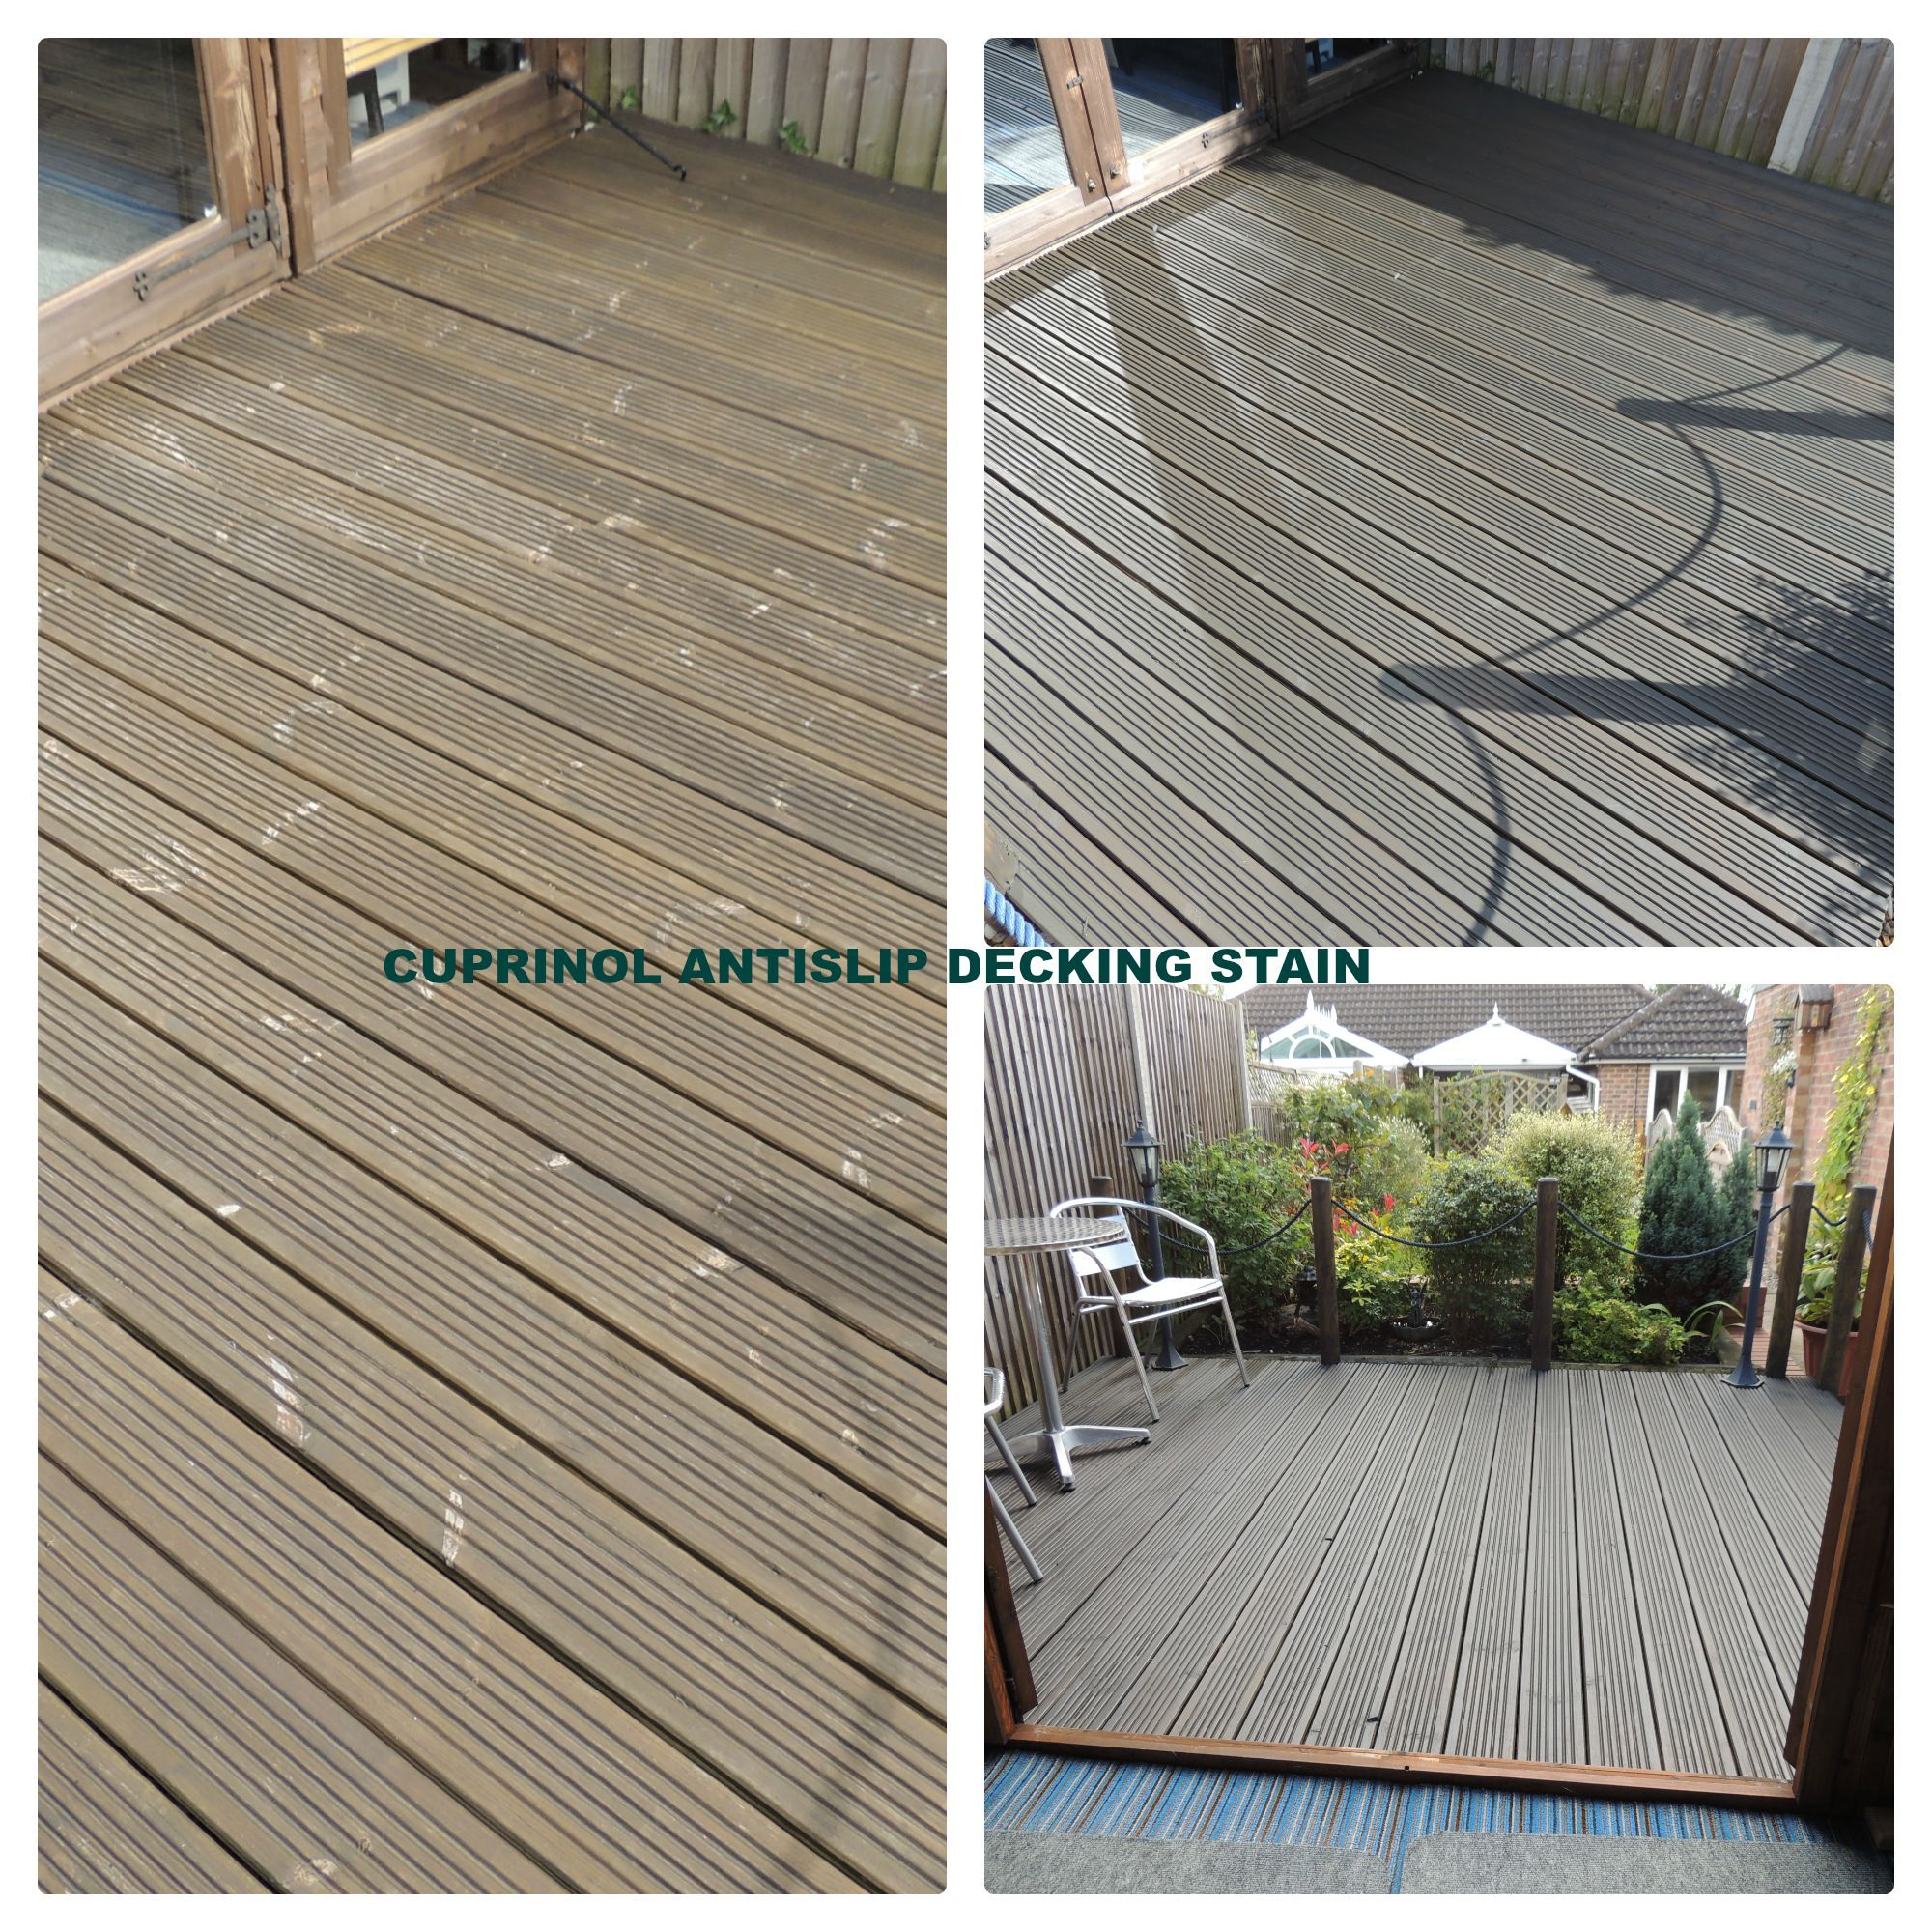 Httpwood finishes directproductcuprinol anti slip httpwood finishes directproduct deckinggarden ideas baanklon Image collections